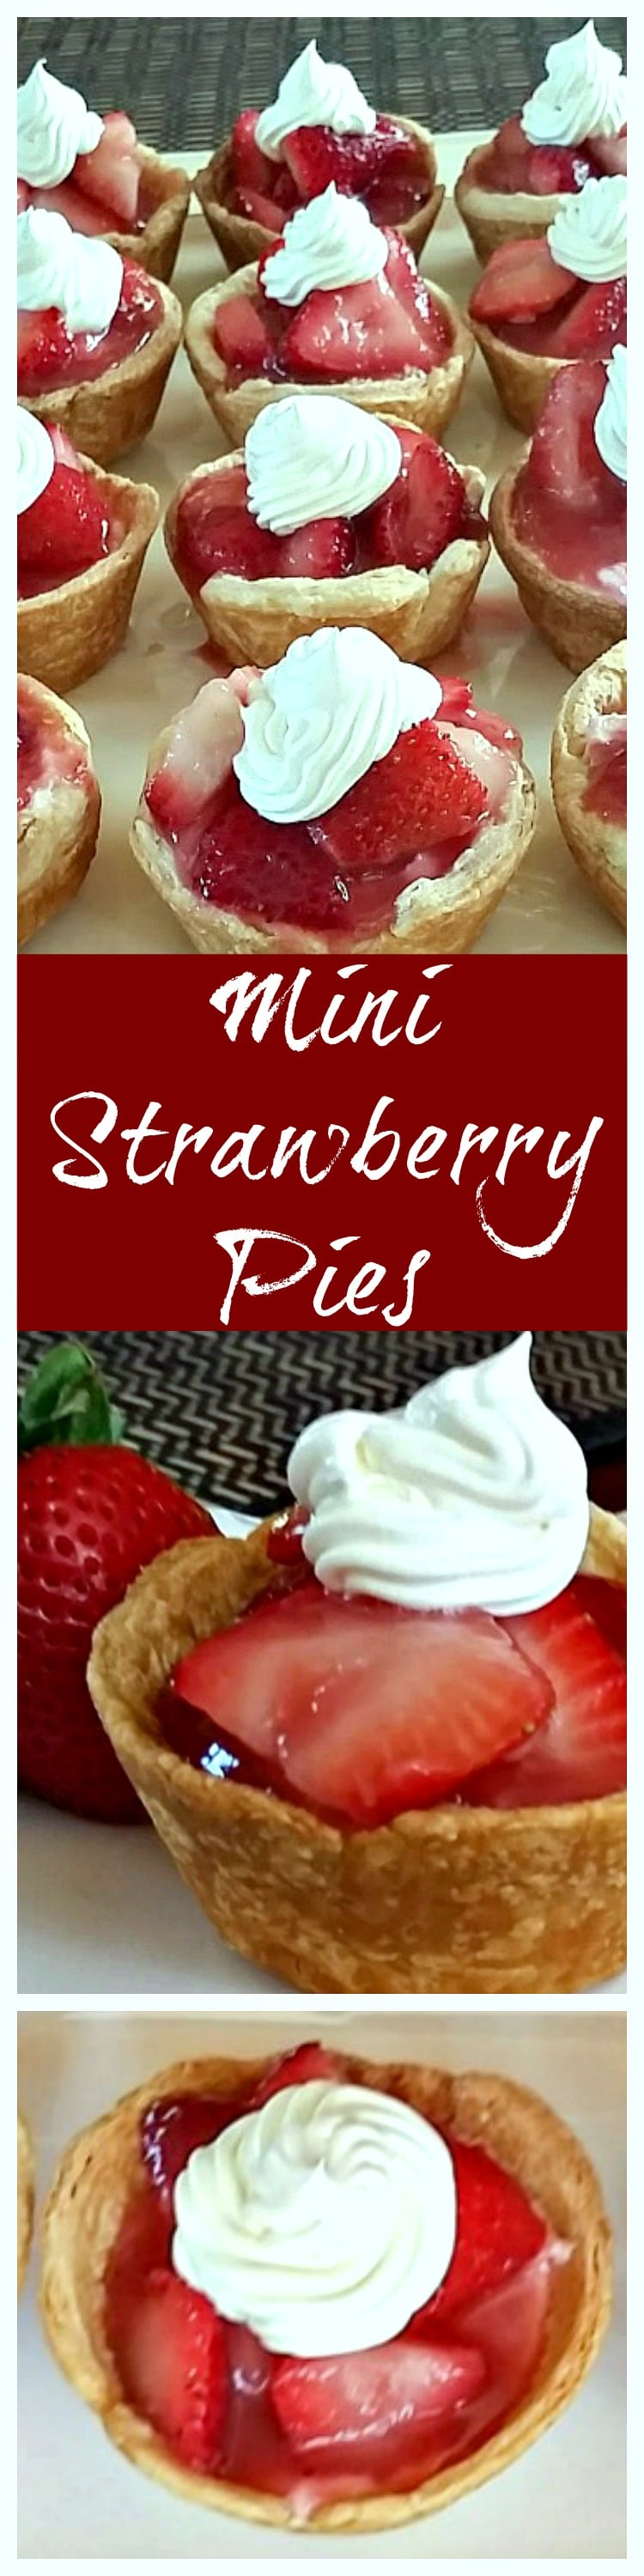 These Mini Strawberry Pies are a must make for Memorial Day or Father's Day cookout. All the goodness of a strawberry pie, but in individual serving.